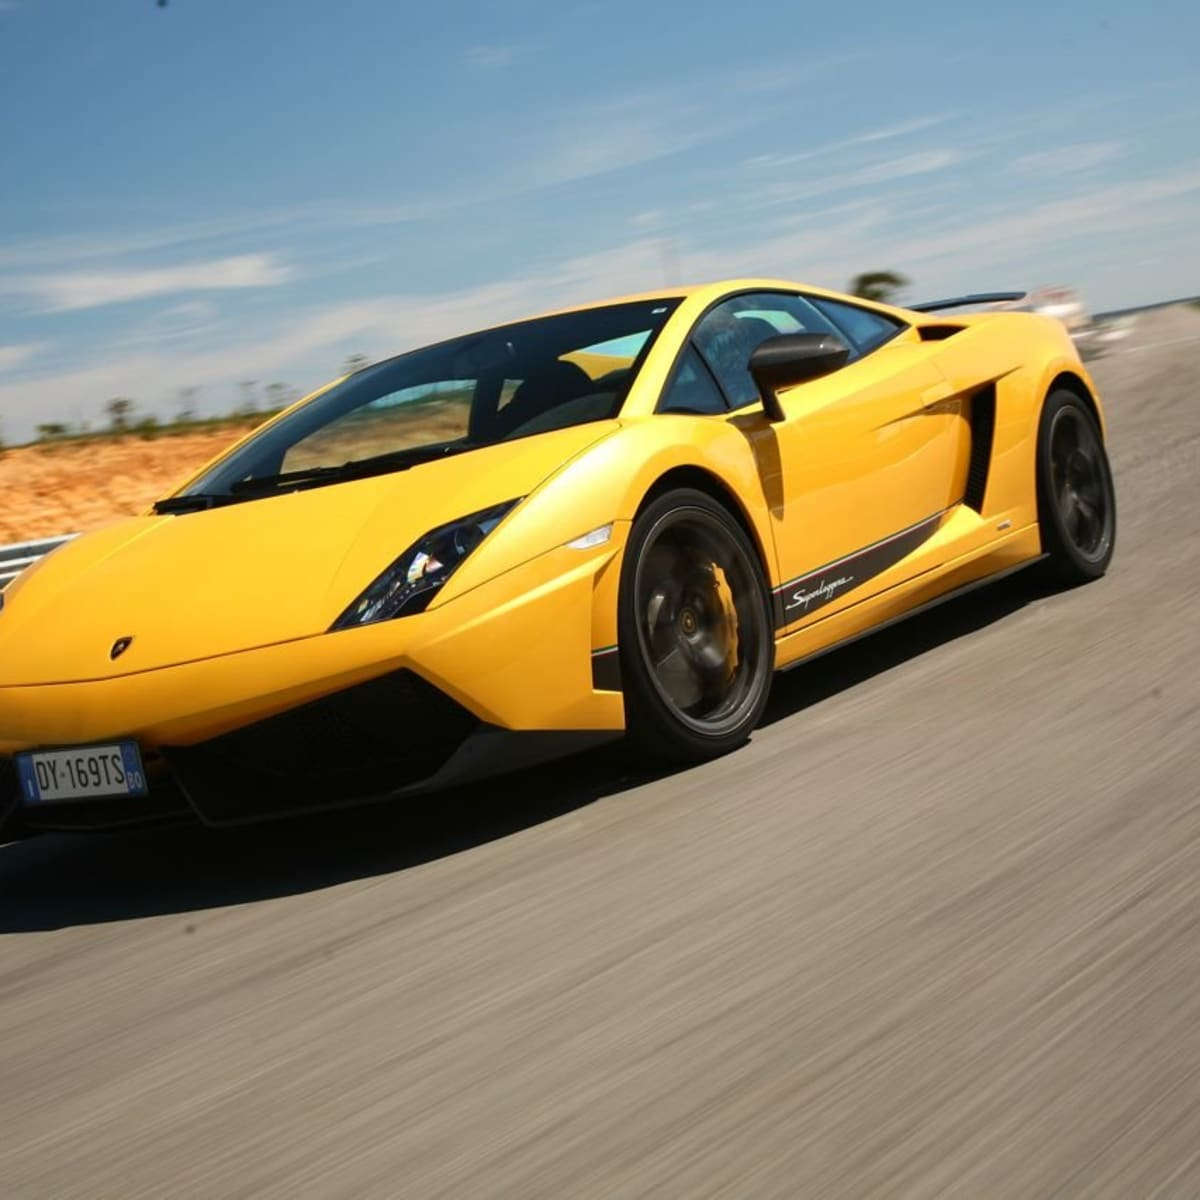 Lamborghini Gallardo LP 570,4 Superleggera Review